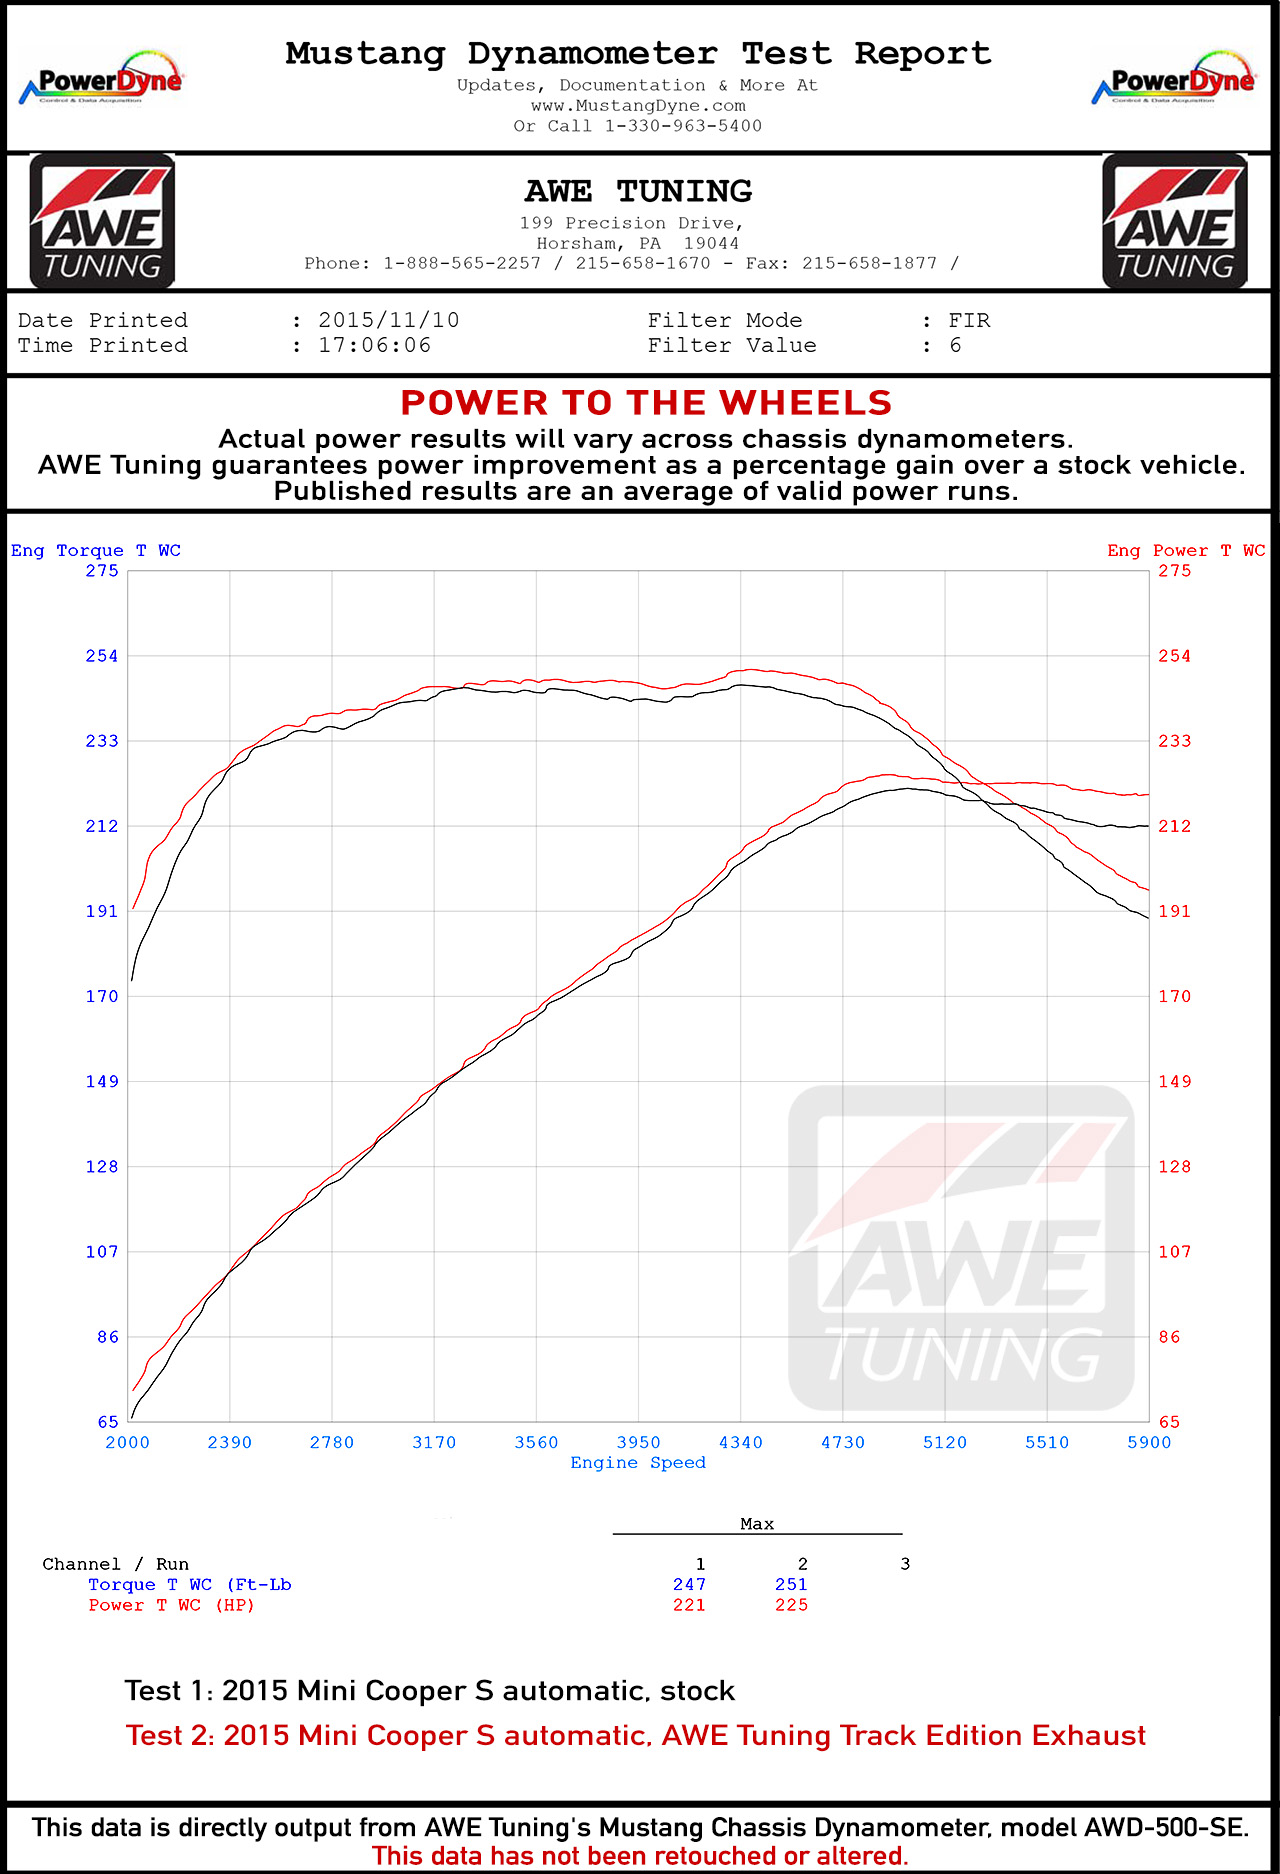 Wheel Horsepower Gains for the AWE Tuning MINI F56 Exhaust System